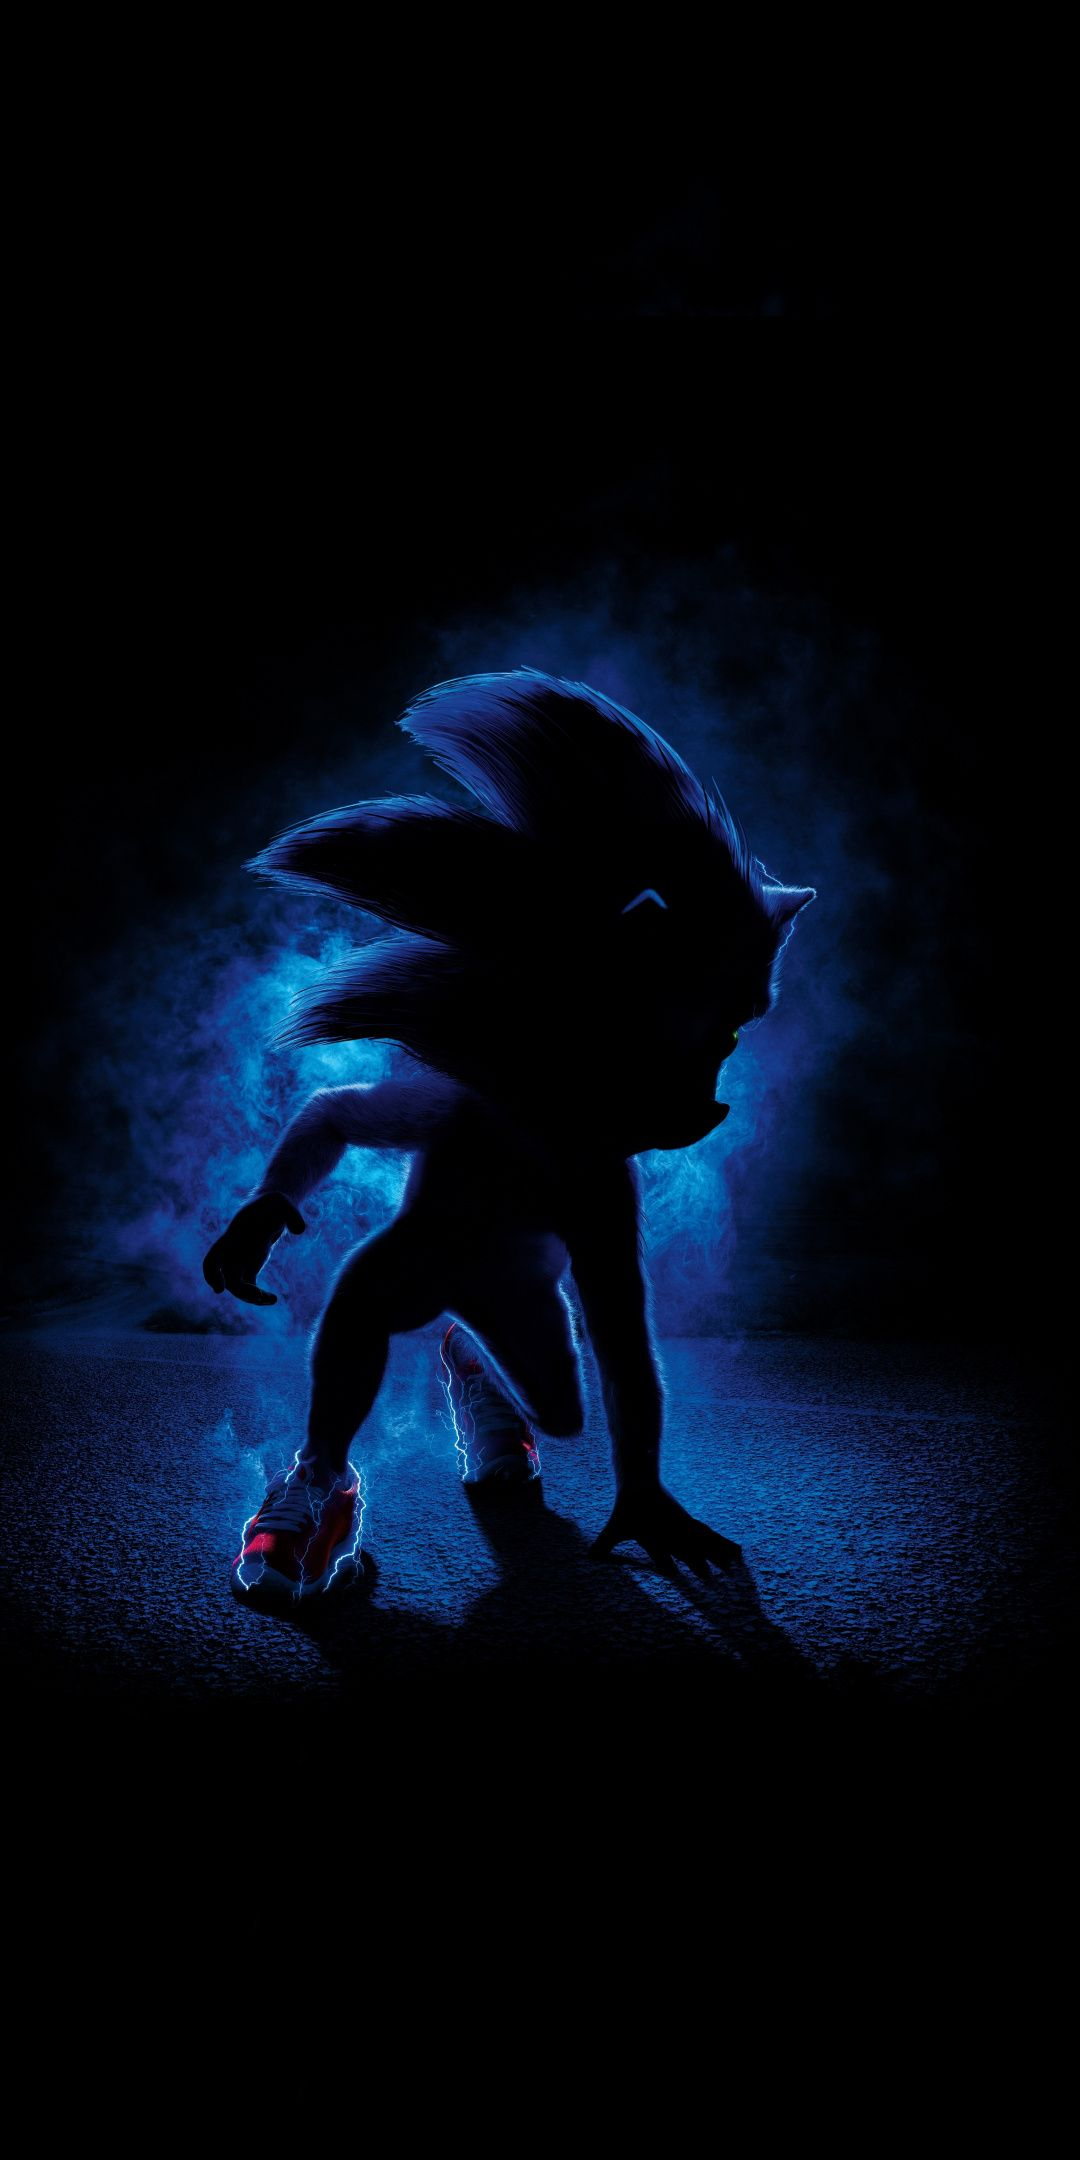 Dark Video Game Sonic The Hedgehog 1080x2160 Wallpaper Hedgehog Movie Sonic The Movie Movie Wallpapers